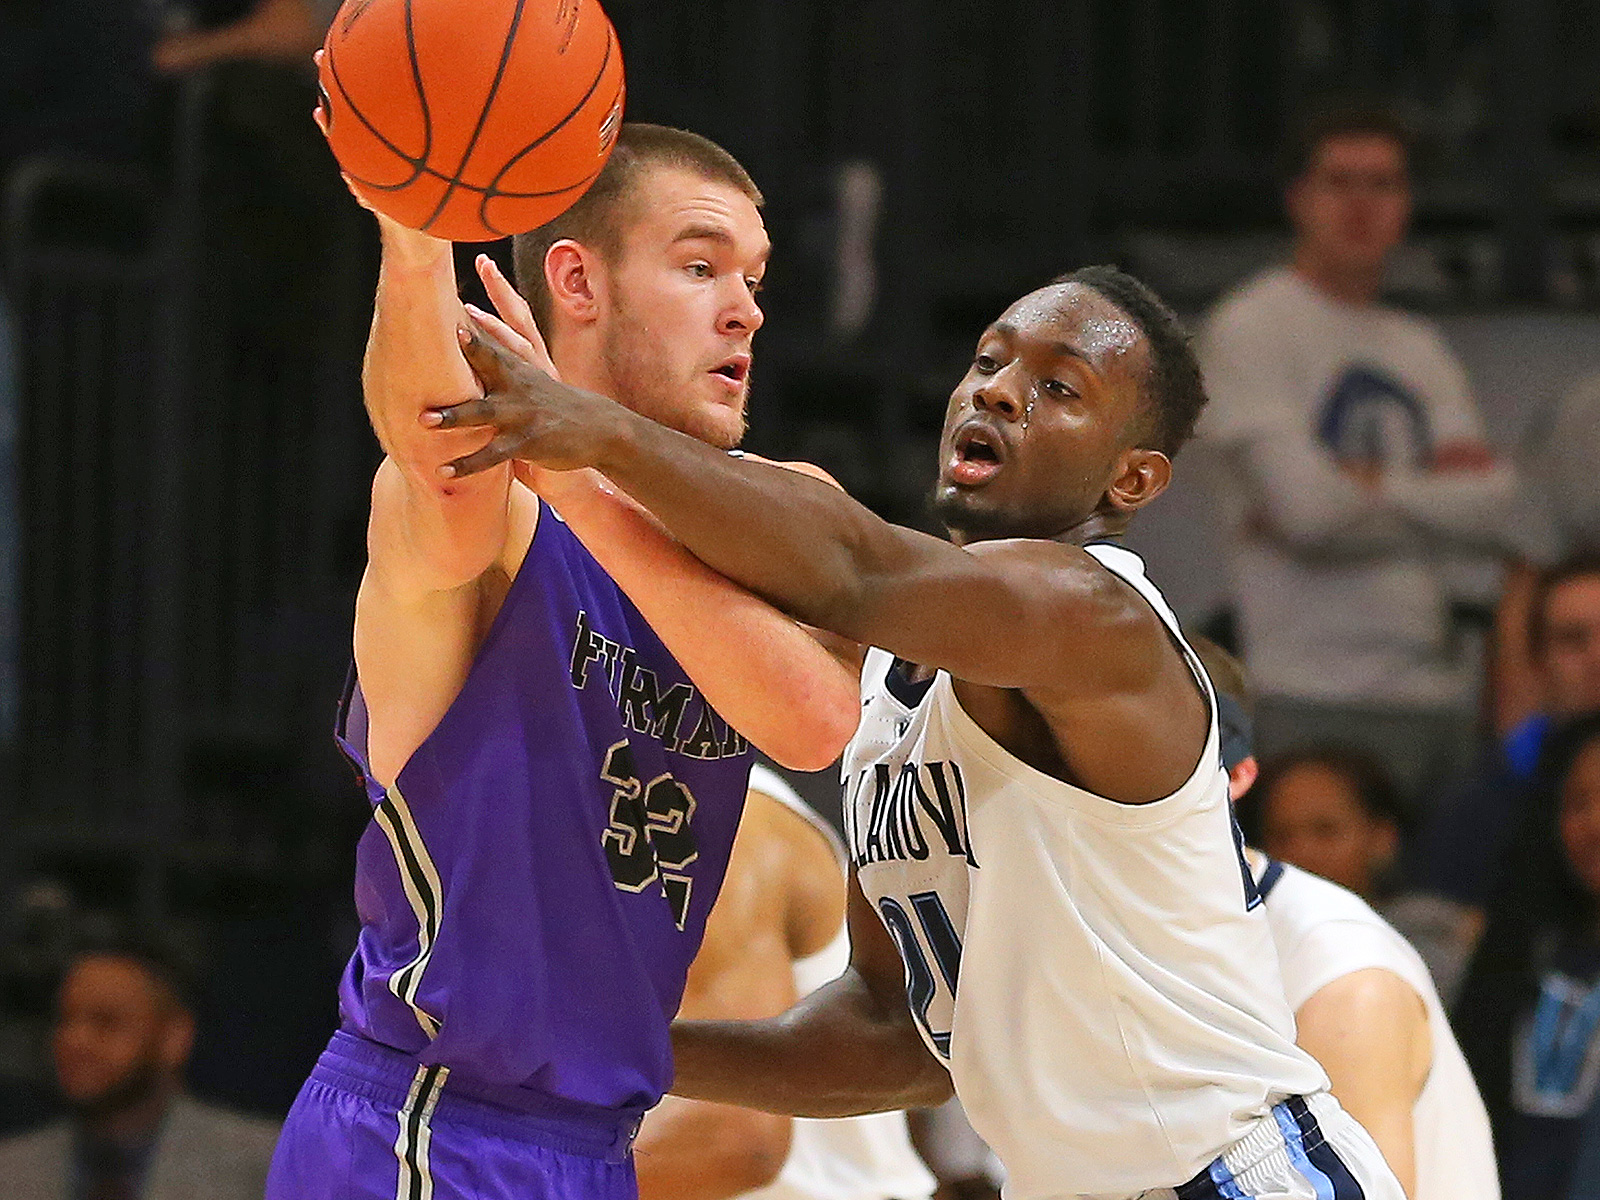 Furman Matt Rafferty